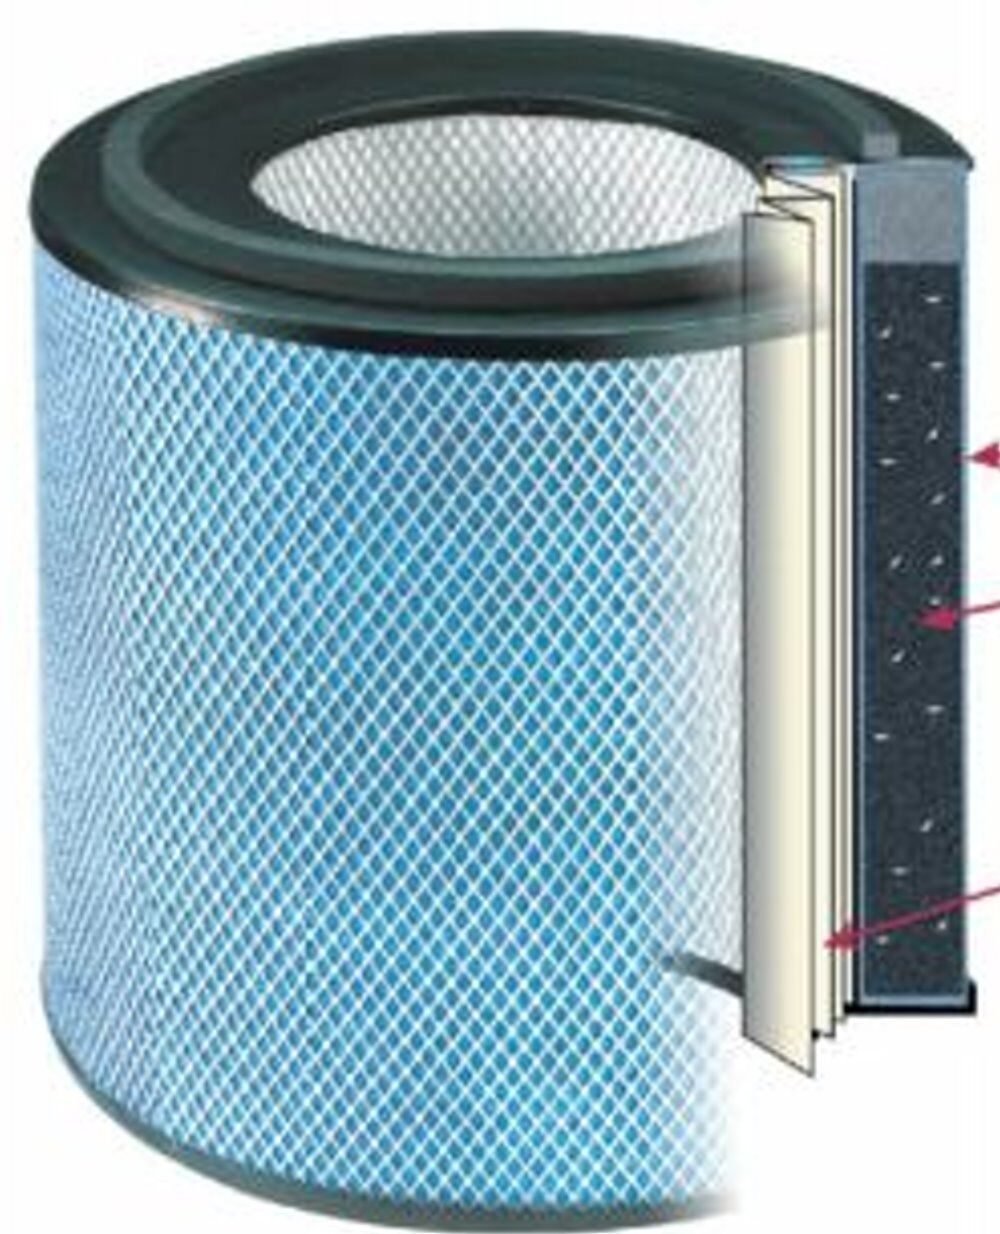 Replacement filter for HEALTHMATE PLUS JR by Austin Air